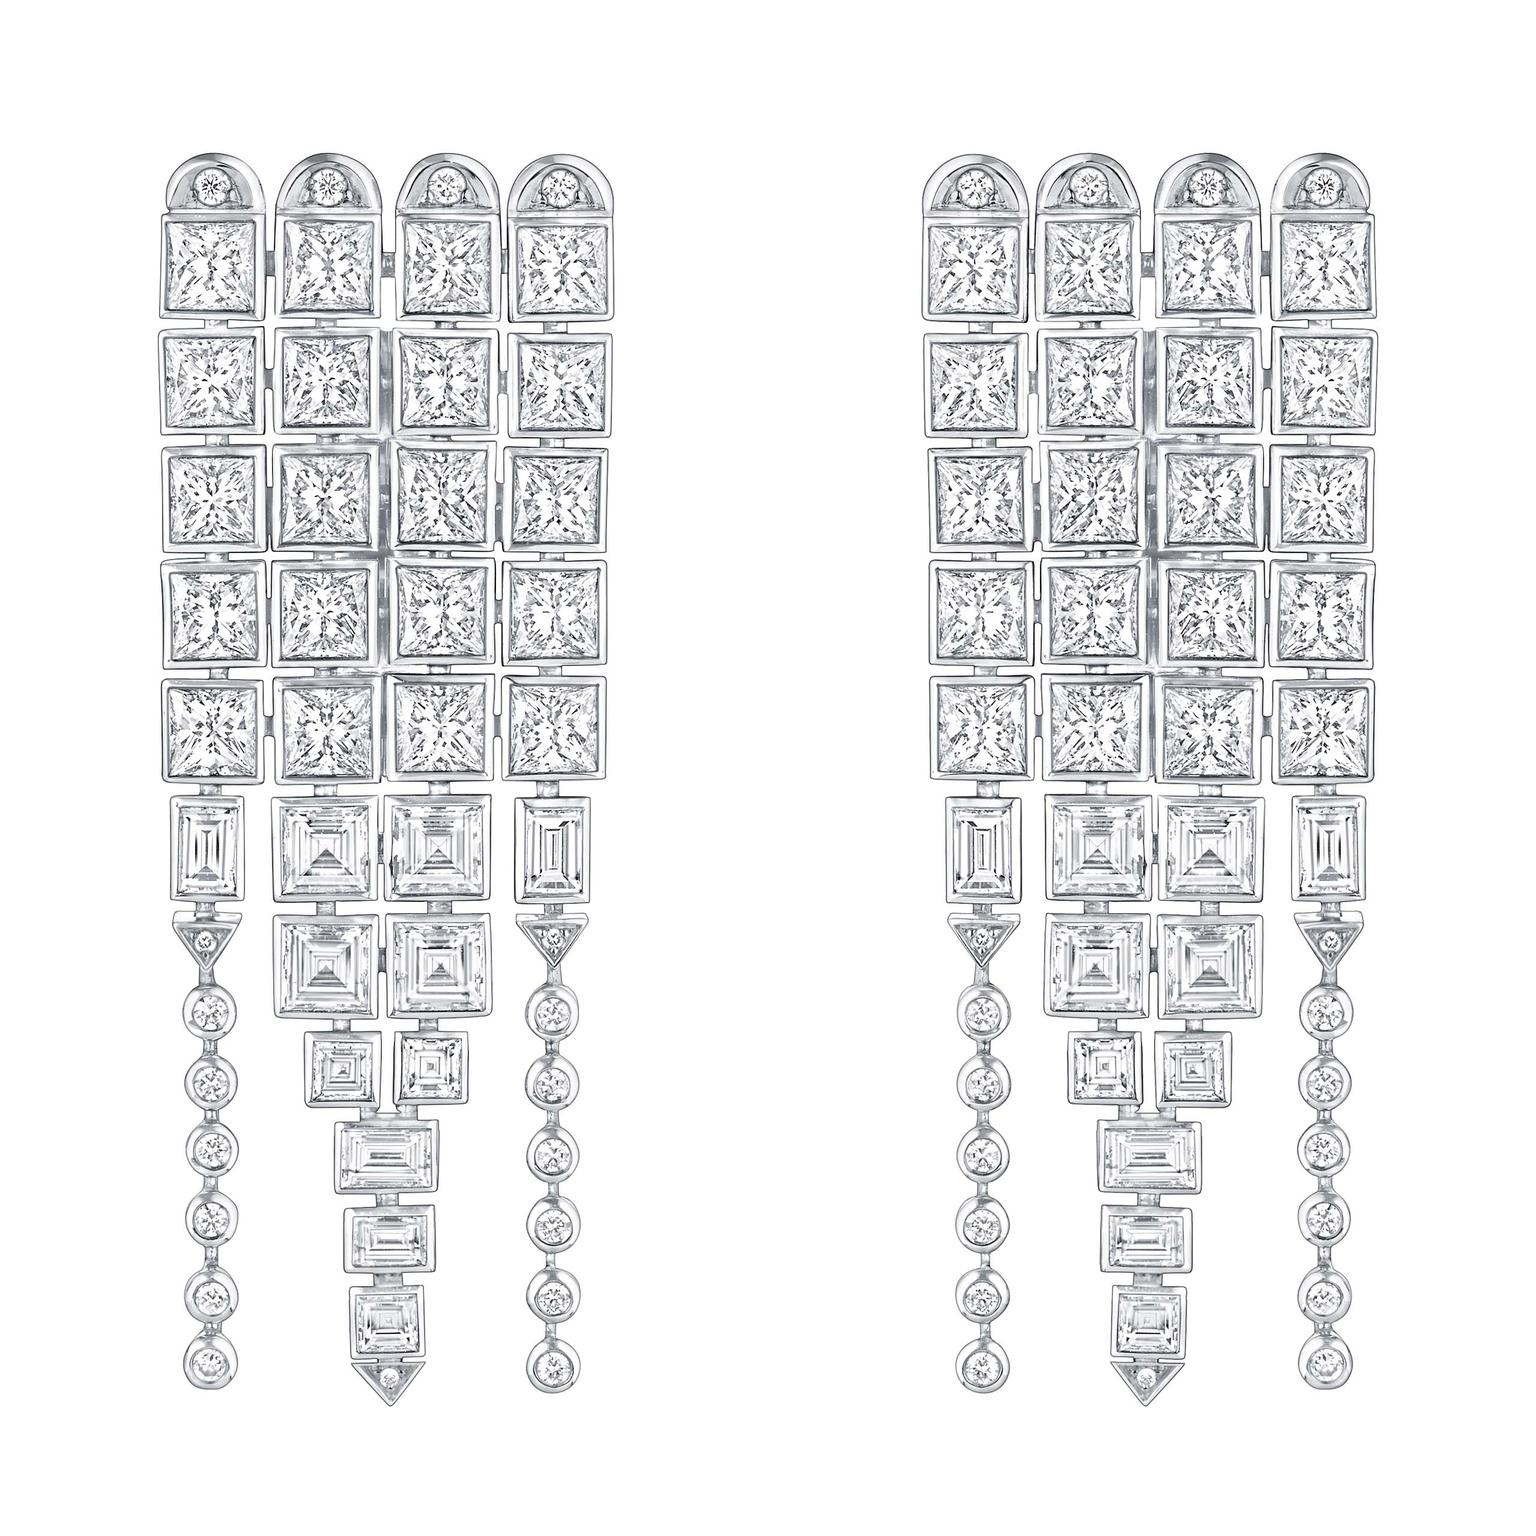 Louis Vuitton Riders of the Knights Le Royaume diamond earrings